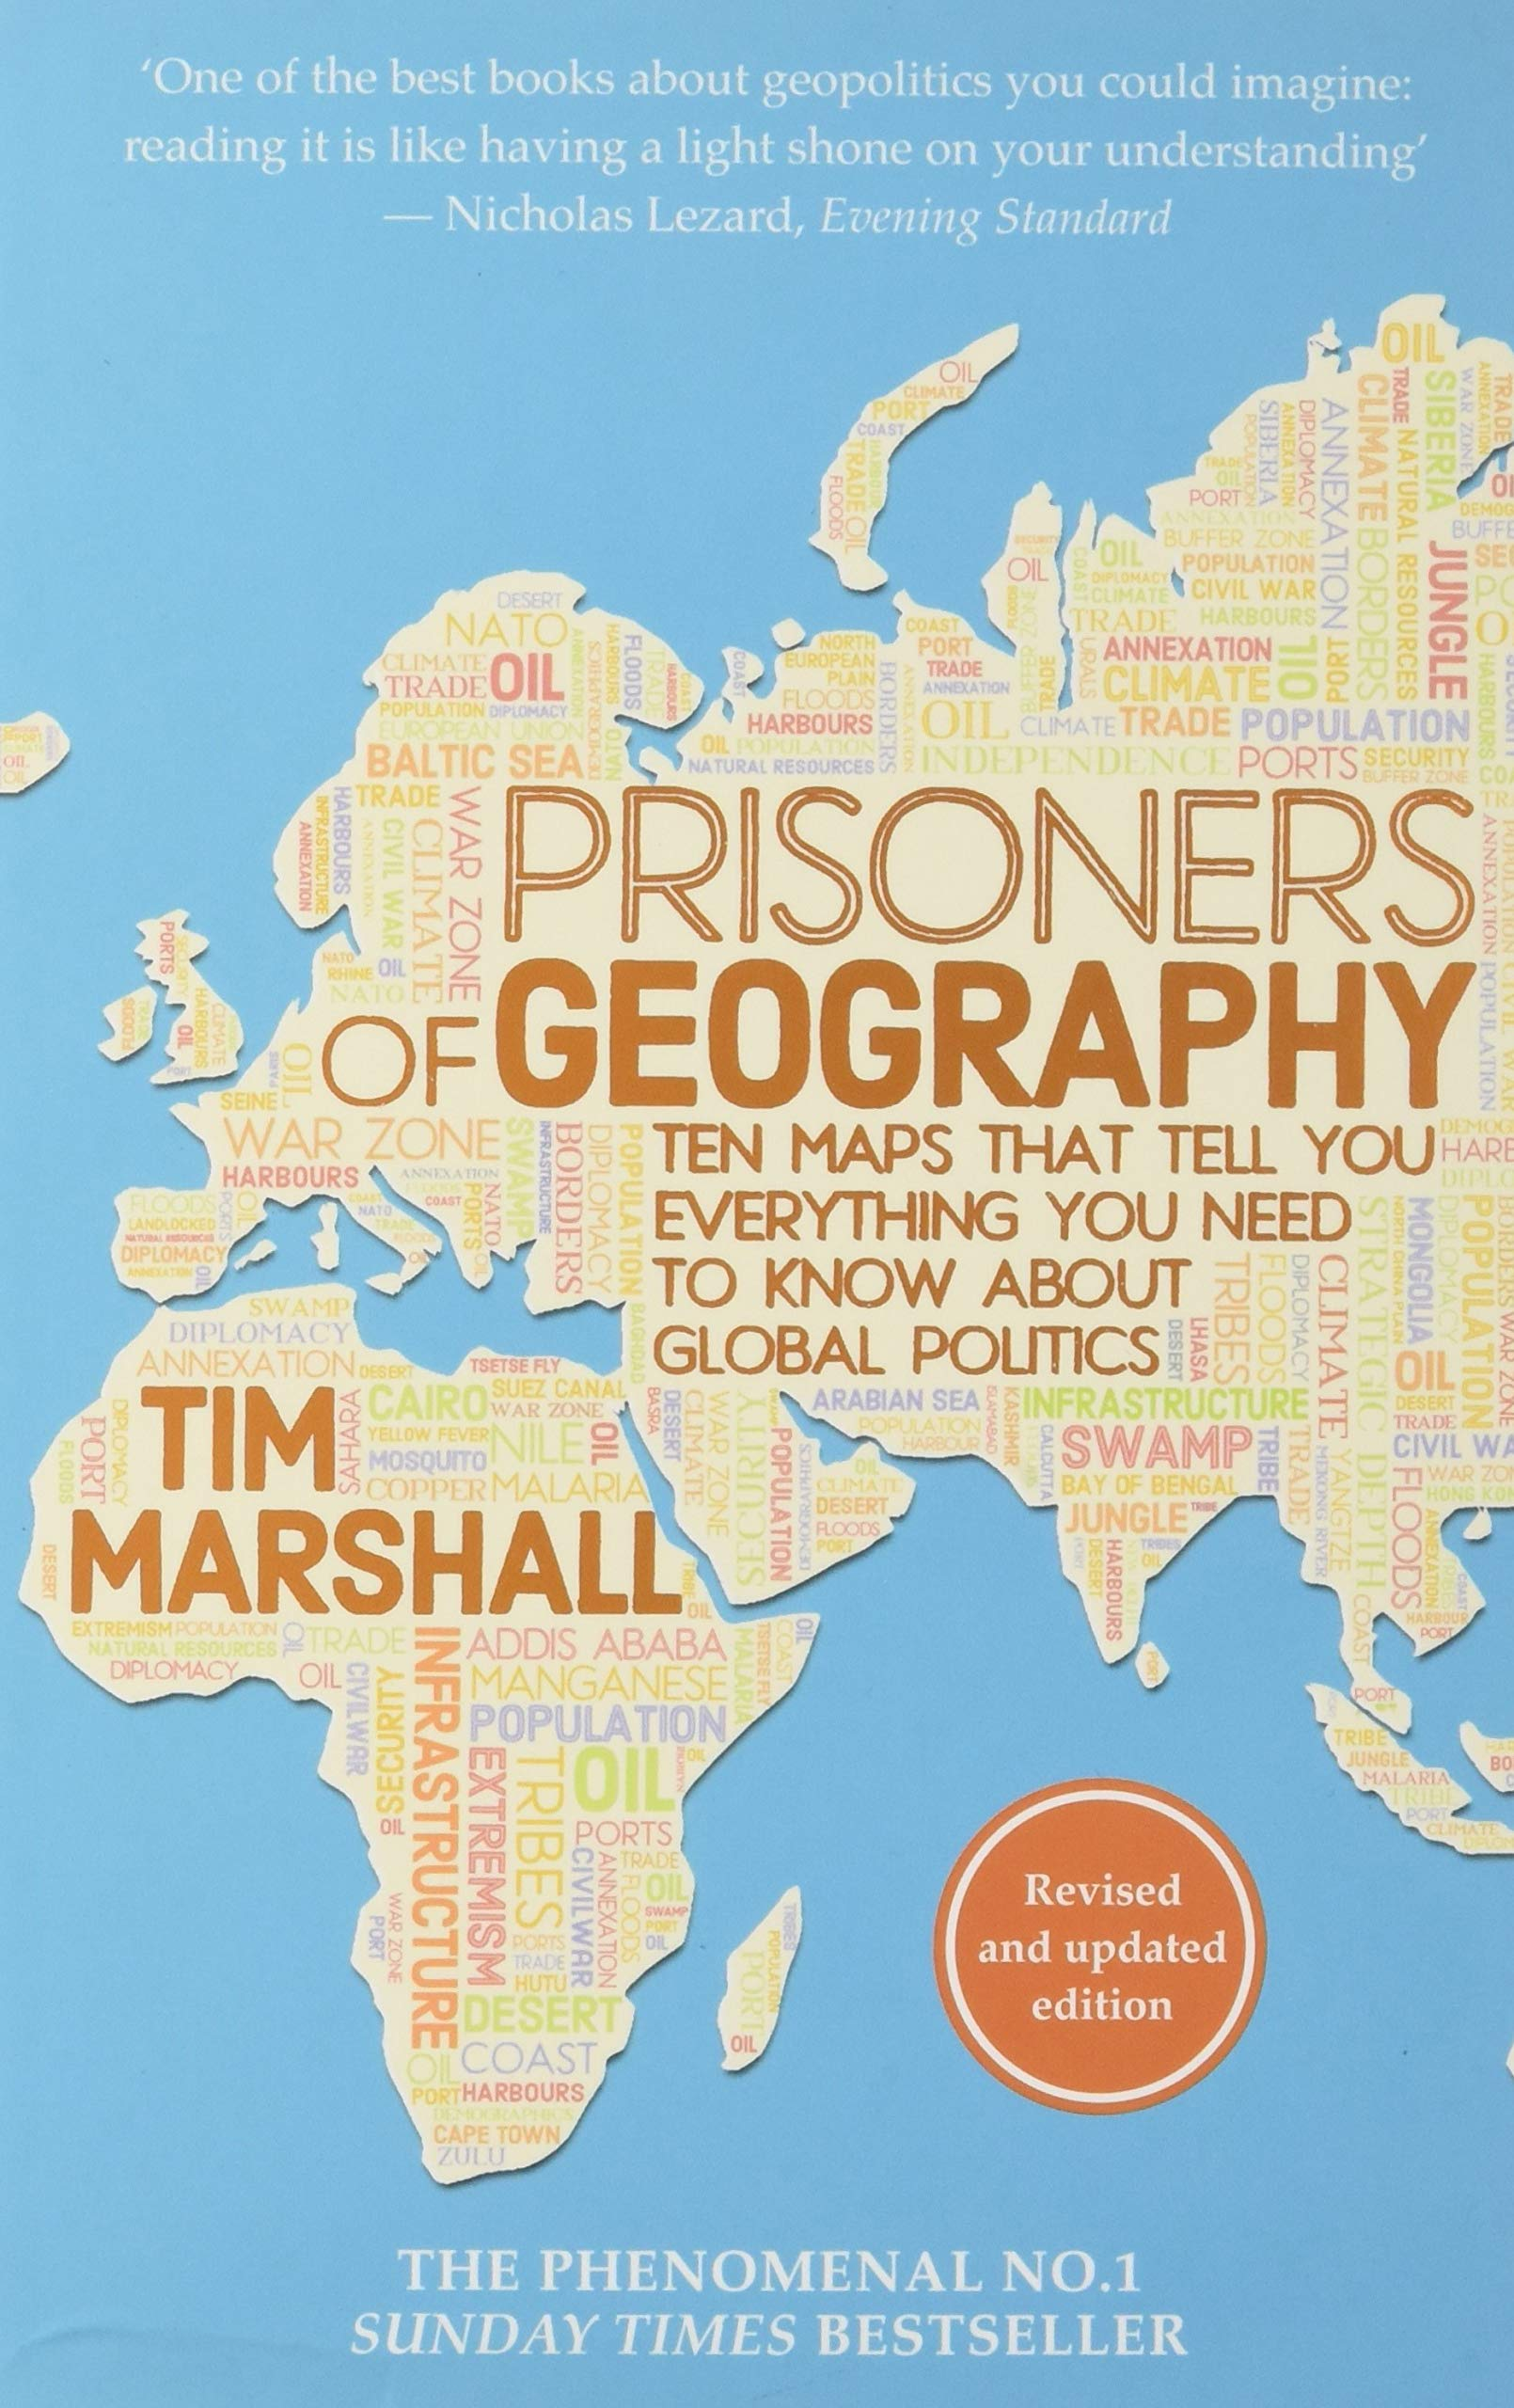 Prisoners of Geography: Ten Maps That Tell You Everything ... on geography books, history map, europe map, geography education, geography of india, population geography, map of australia map, geography climate, historical events map, indian geography, geography papers, map of greece, north america map, landforms map, geography game, prime meridian map, environmental geography, altitude map, current day map, italian culture map, ecological economics map, philippine geography, political map, asia map, mountain ranges map, government map, map of, climate map, human geography, the current weather map, geography of science, geographical map, astronomy map, atlas map,